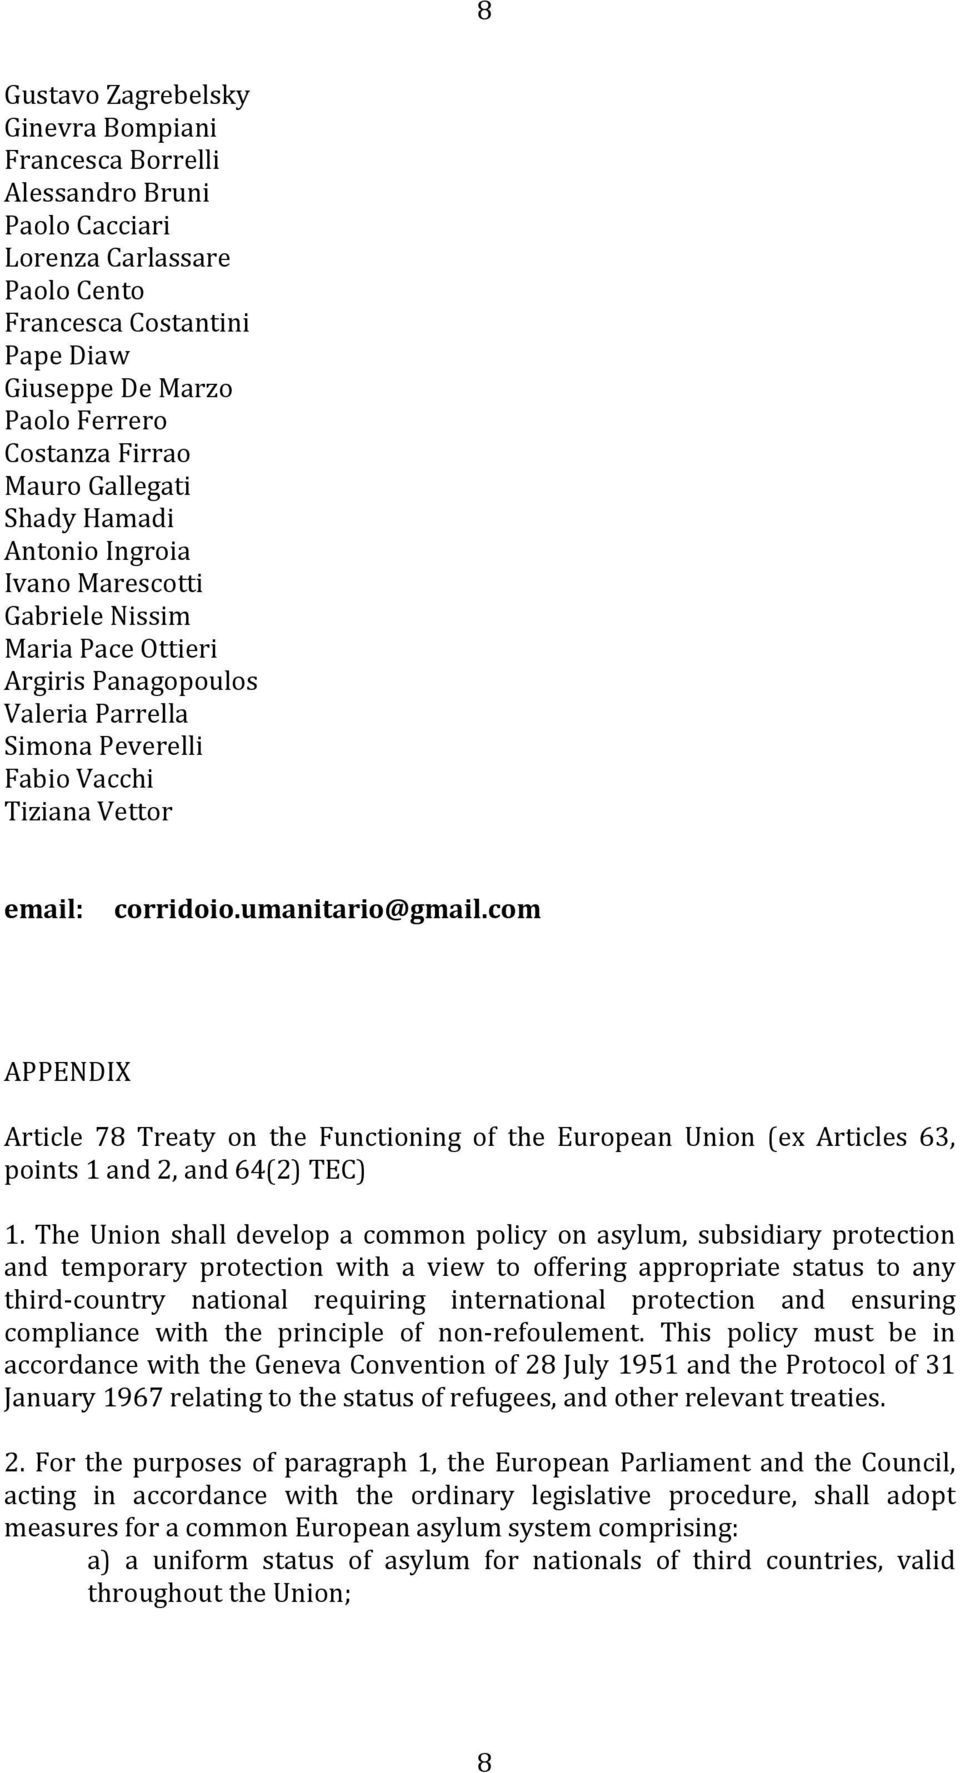 umanitario@gmail.com APPENDIX Article 78 Treaty on the Functioning of the European Union (ex Articles 63, points 1 and 2, and 64(2) TEC) 1.